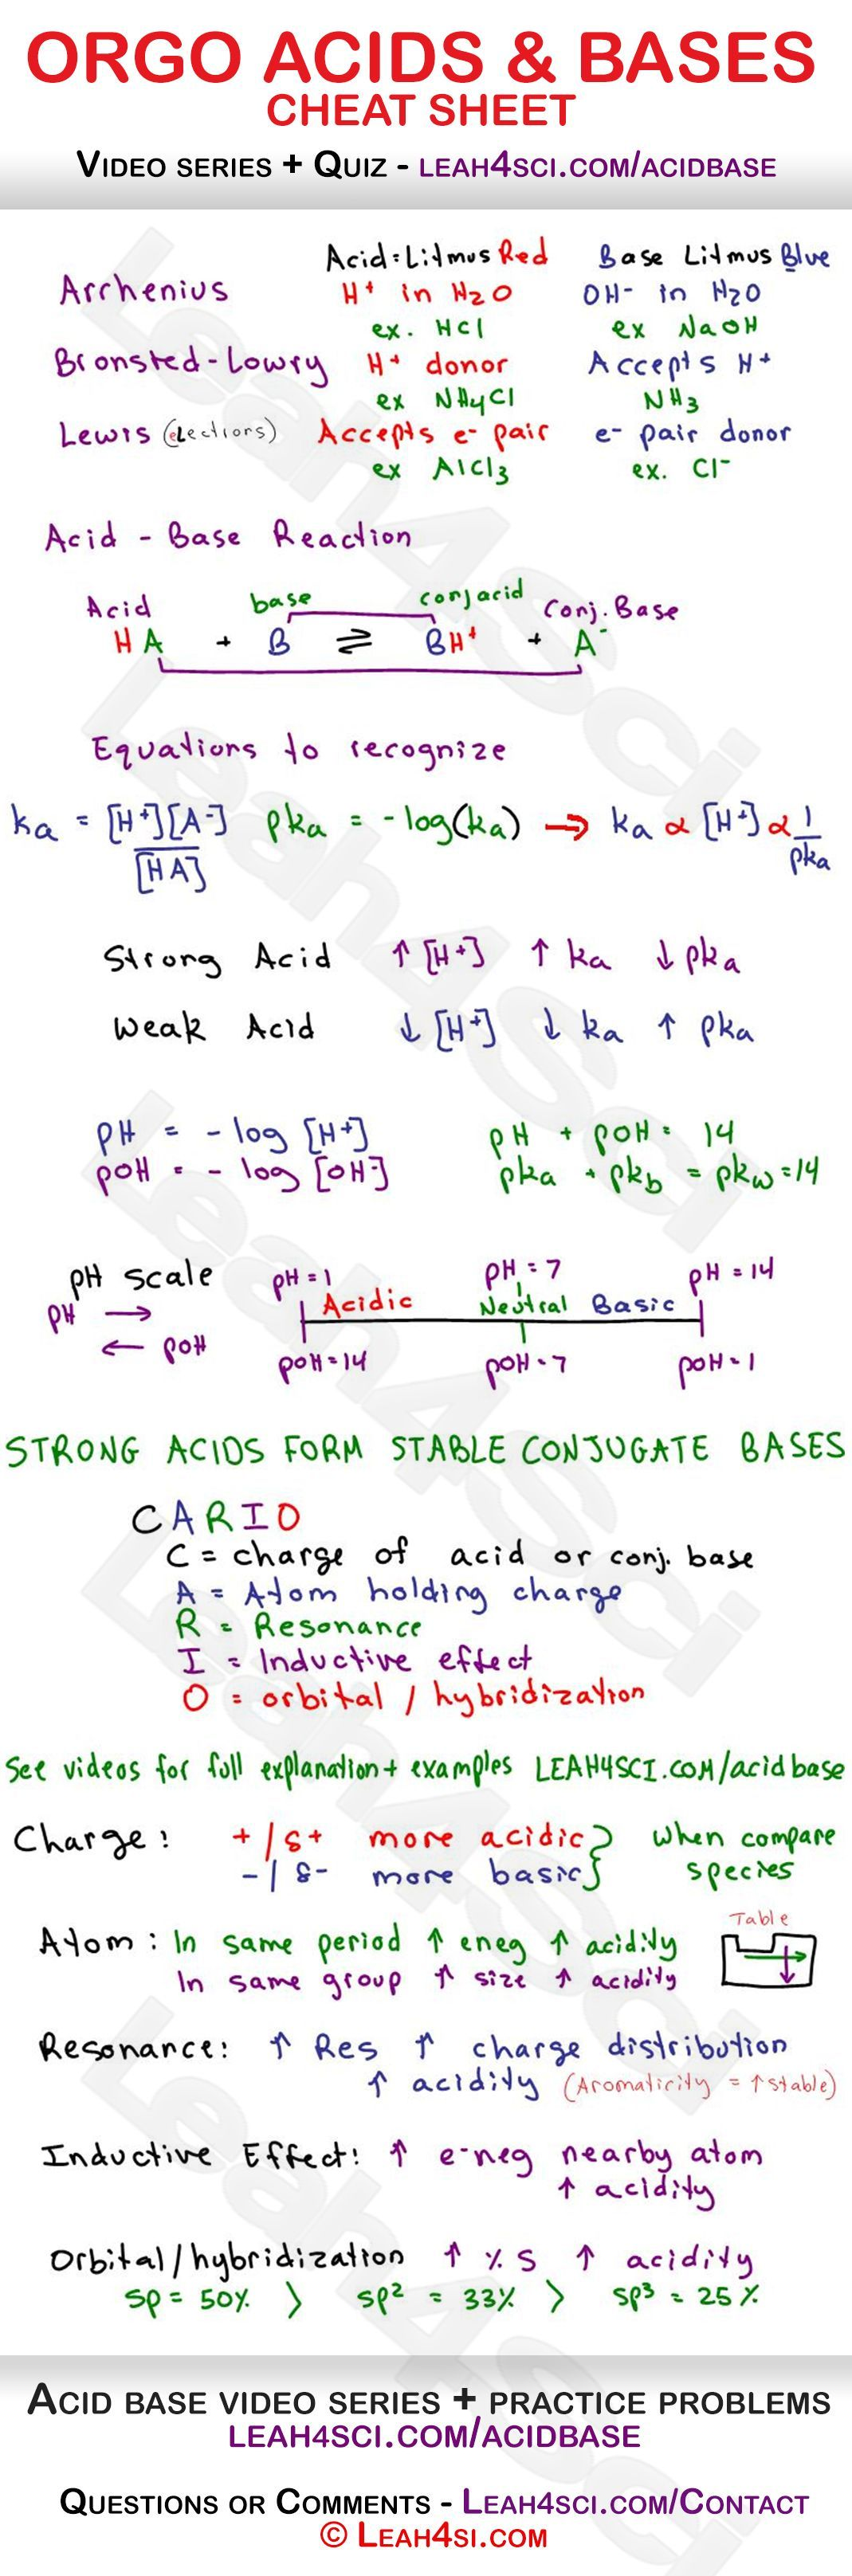 worksheet Bronsted Lowry Acids And Bases Worksheet Answers acids and bases in organic chemistry arrhenius bronsted lowry lewis and